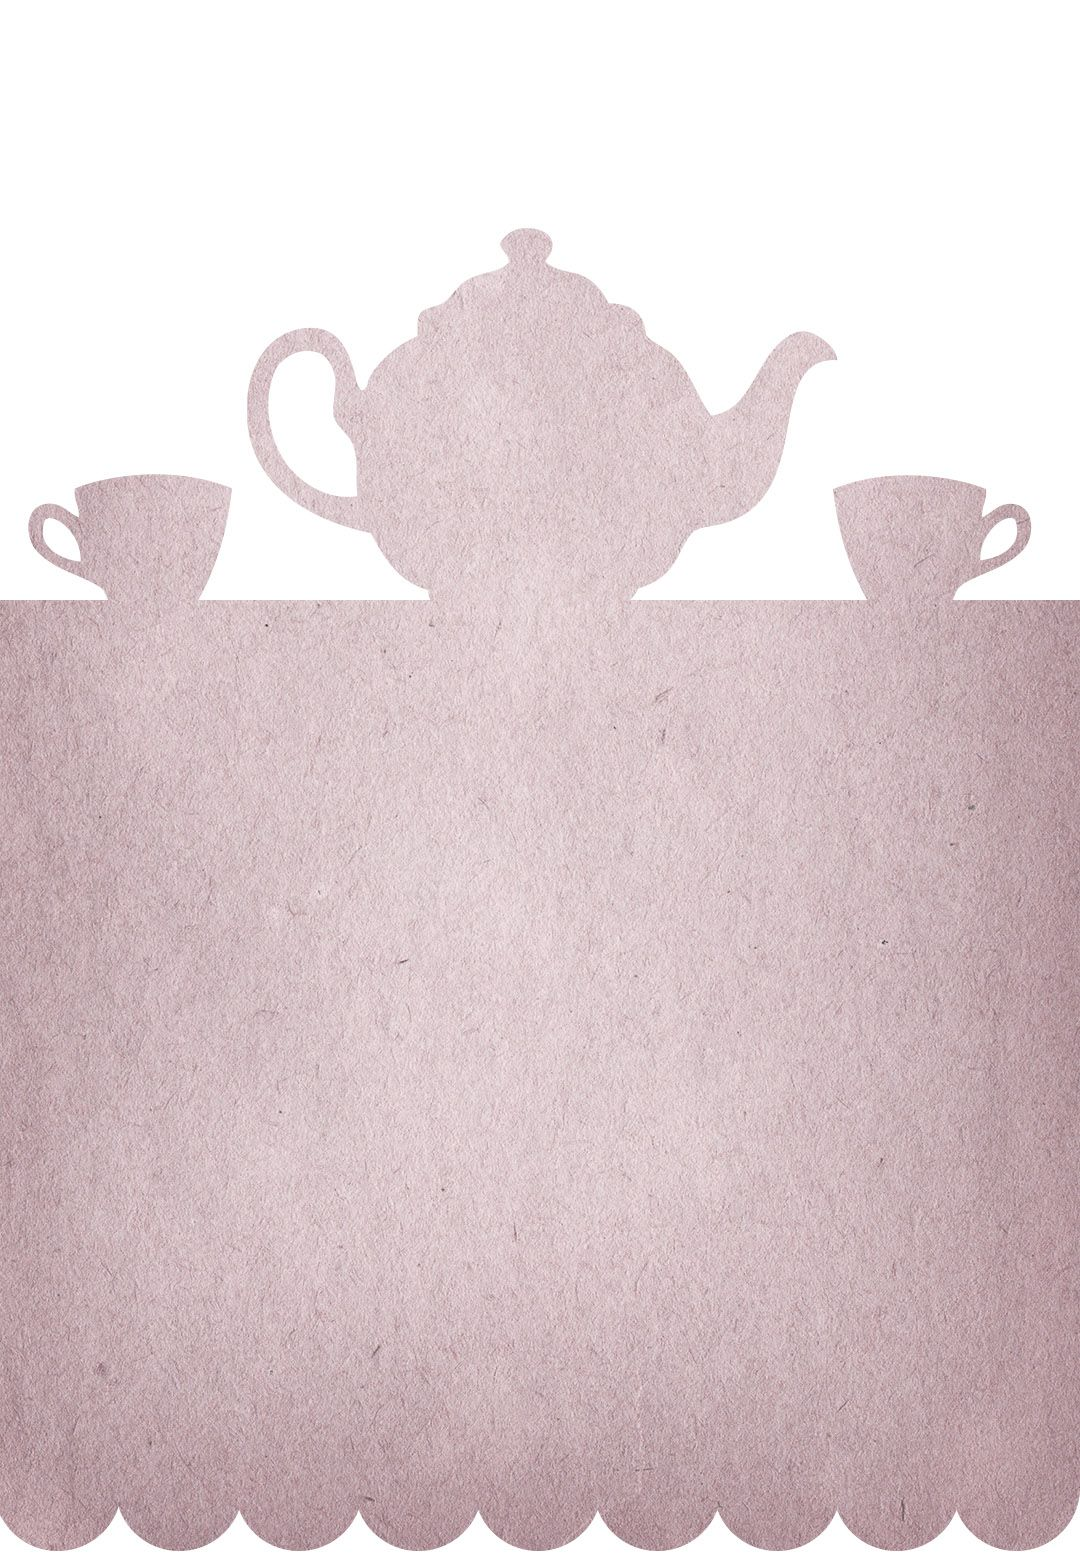 morning tea invitation template free - free printable tea party invitation communication